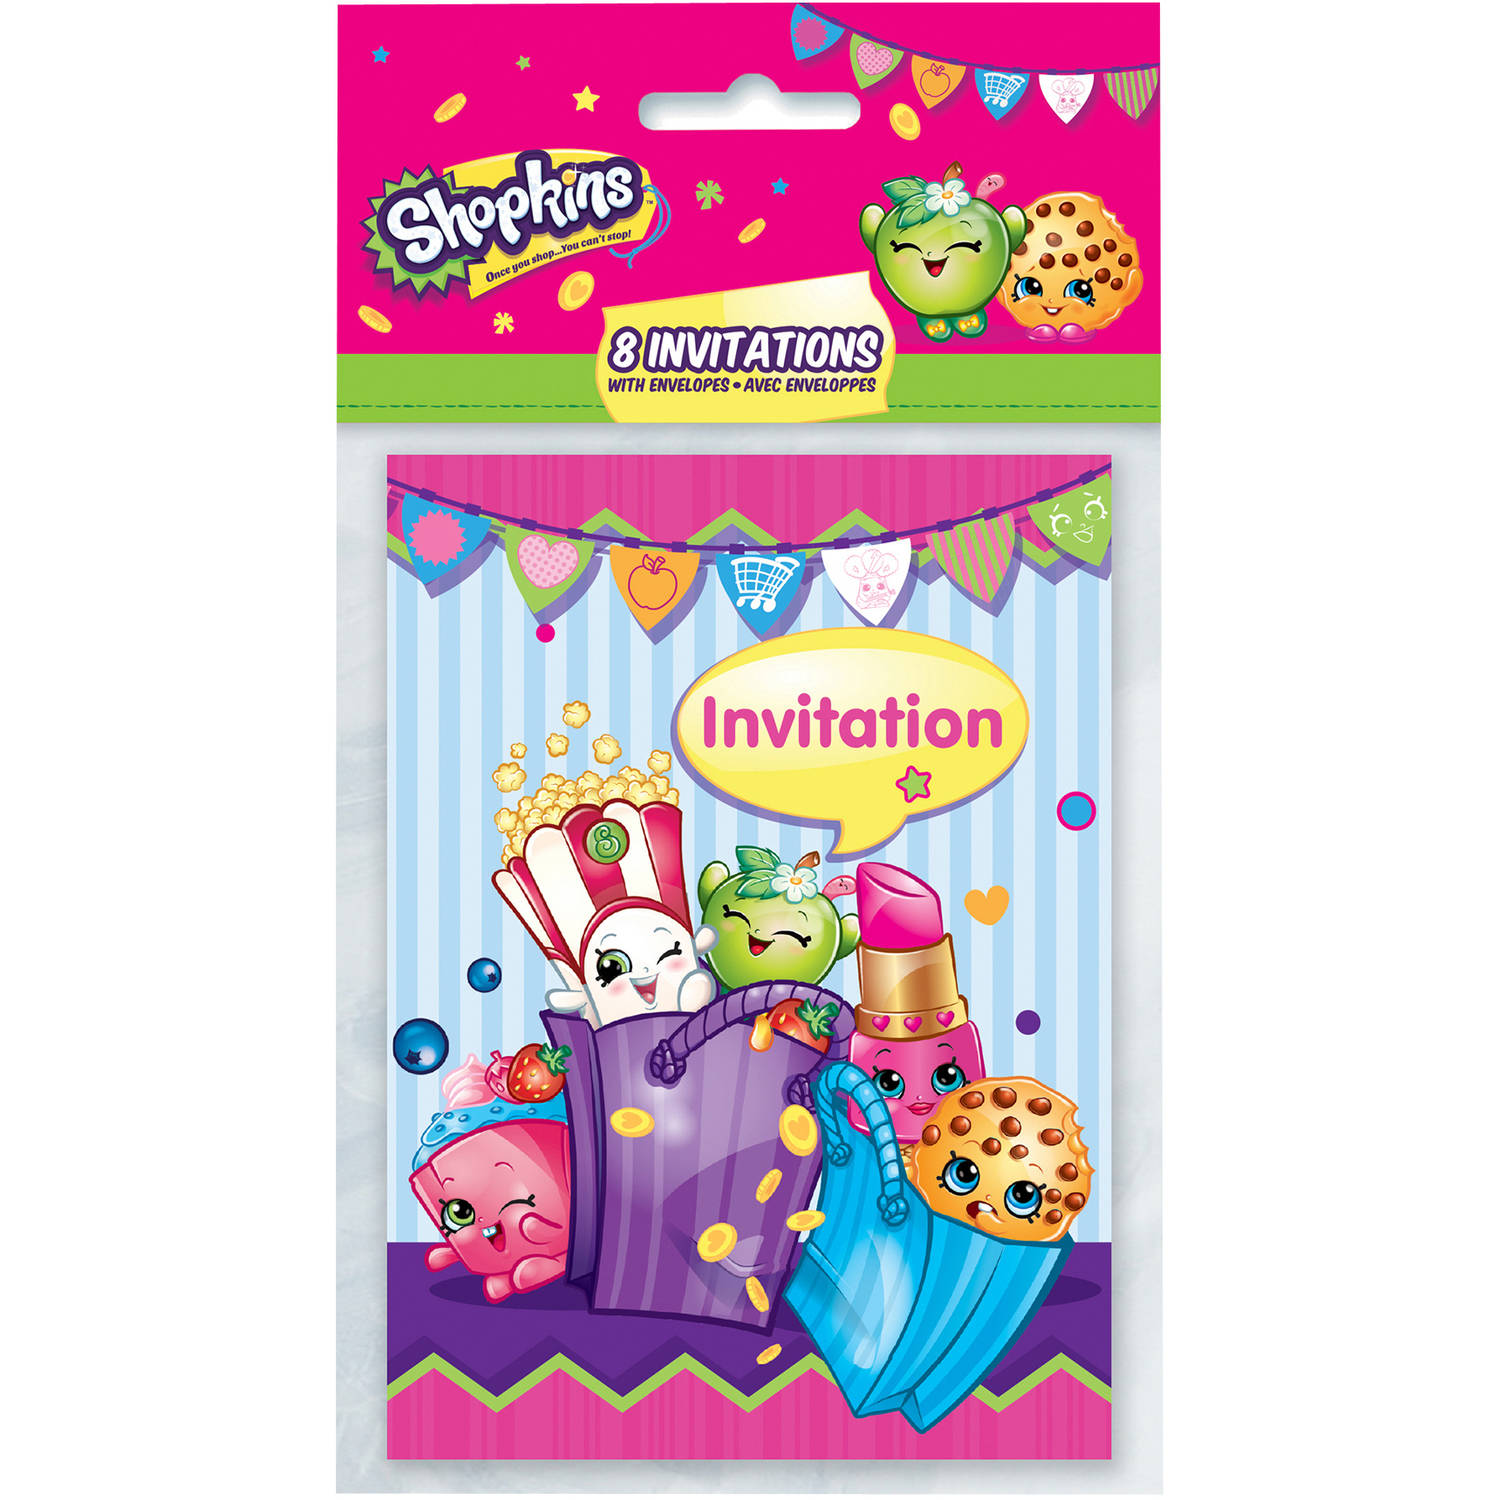 Shopkins Invitations 8ct Walmart – Party Invitations Walmart